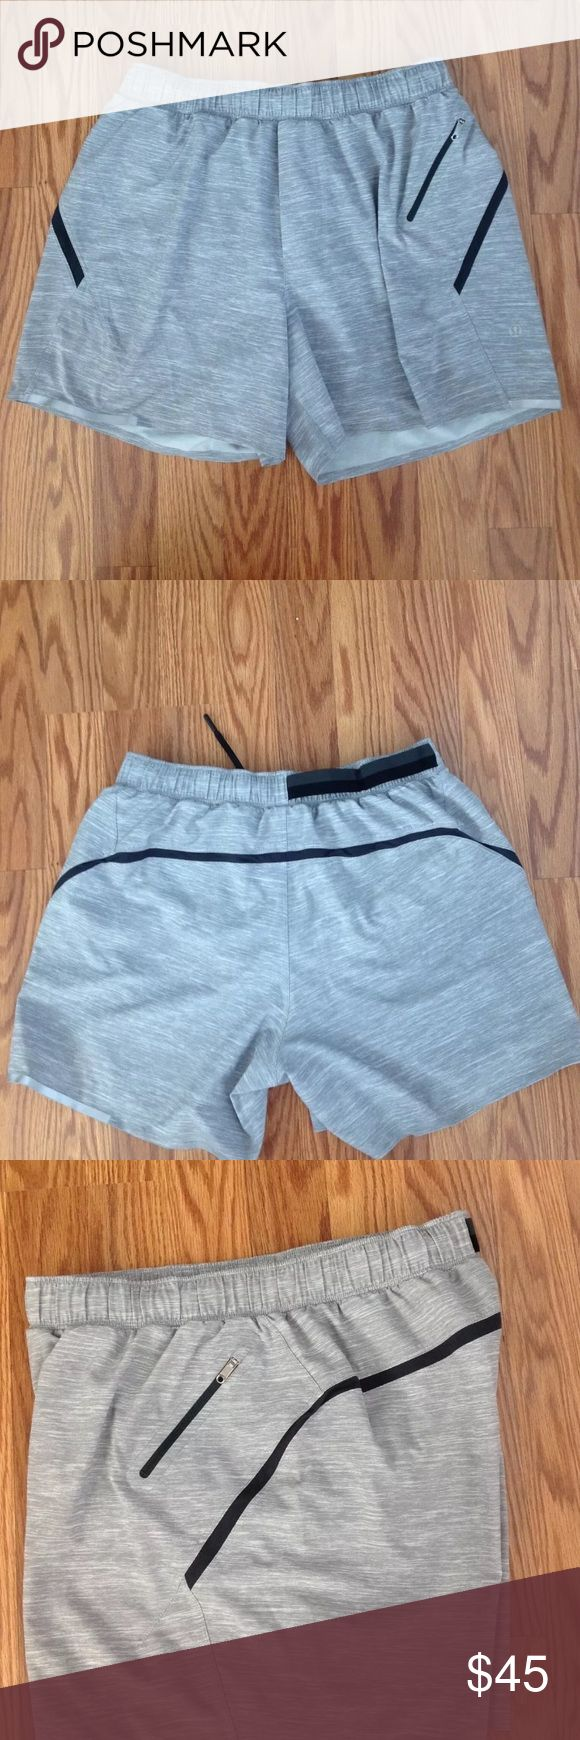 "Selling this Lululemon Medium Surge Shorts 5"" Heather Gray on Poshmark! My username is: wrd14. #shopmycloset #poshmark #fashion #shopping #style #forsale #lululemon athletica #Other"